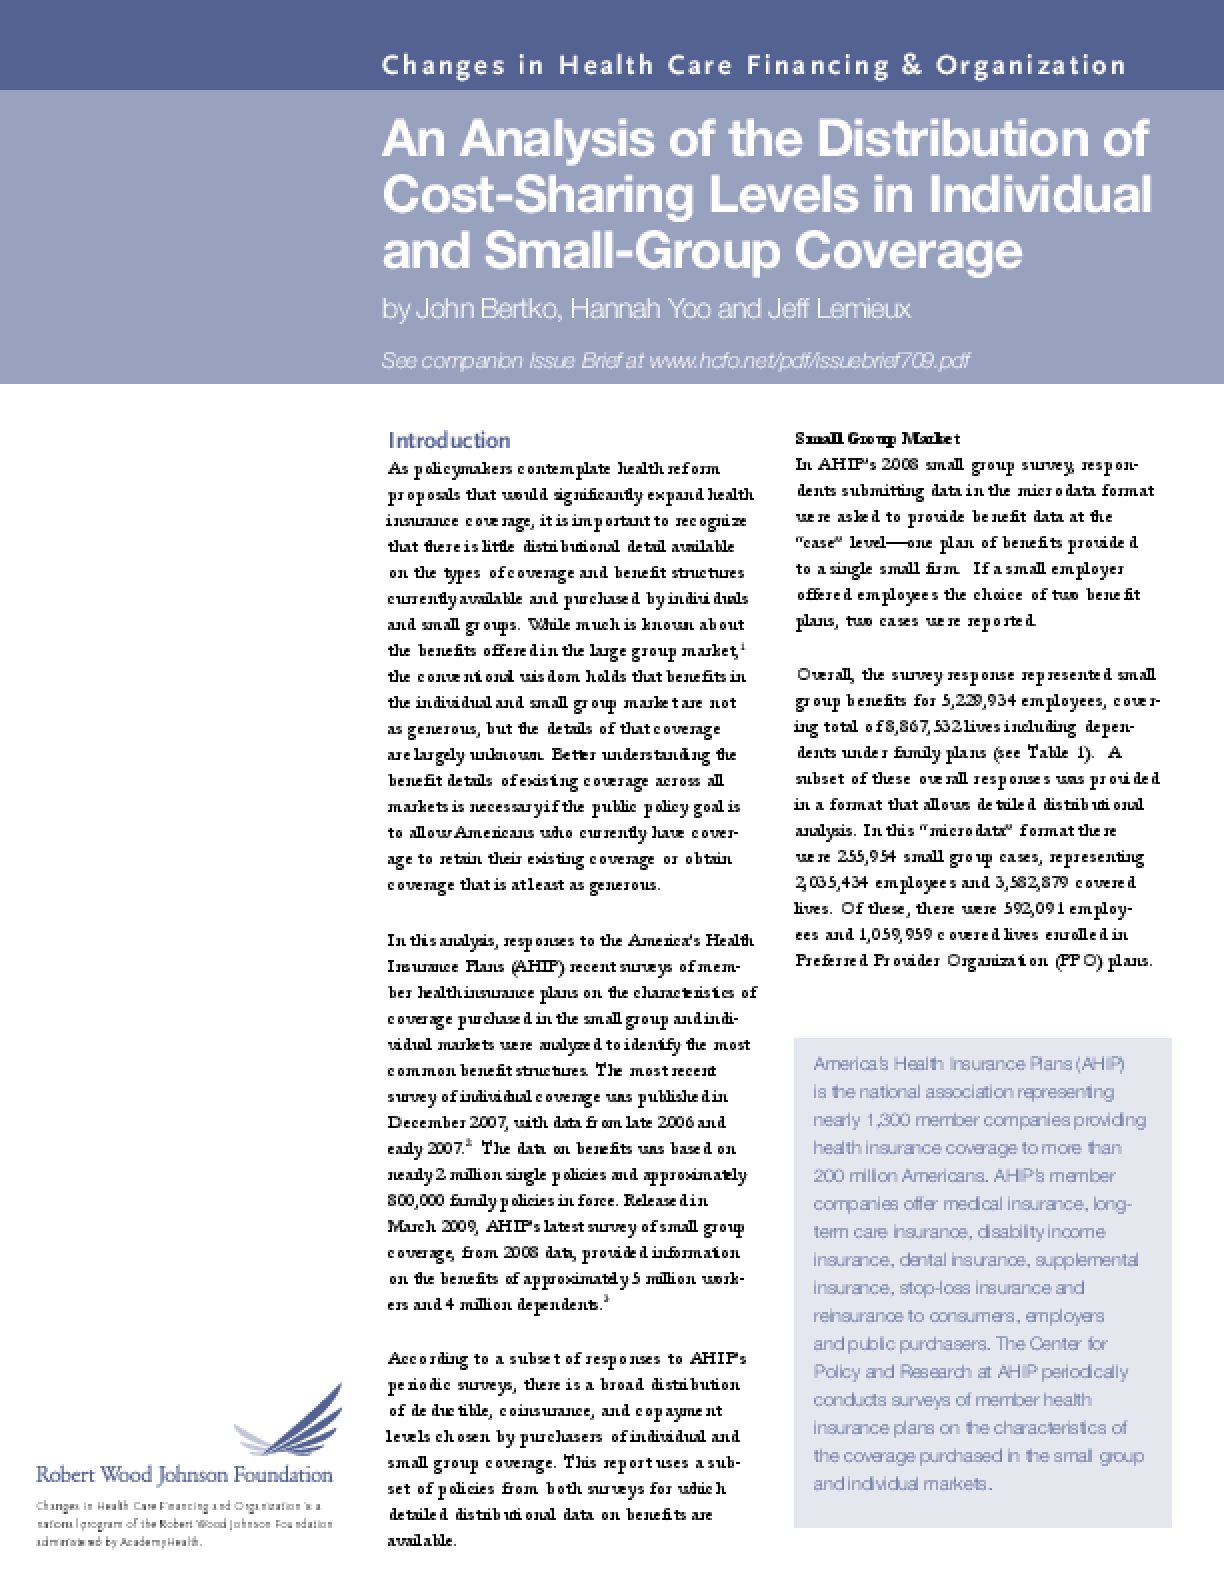 An Analysis of the Distribution of Cost-Sharing Levels in Individual and Small-Group Coverage